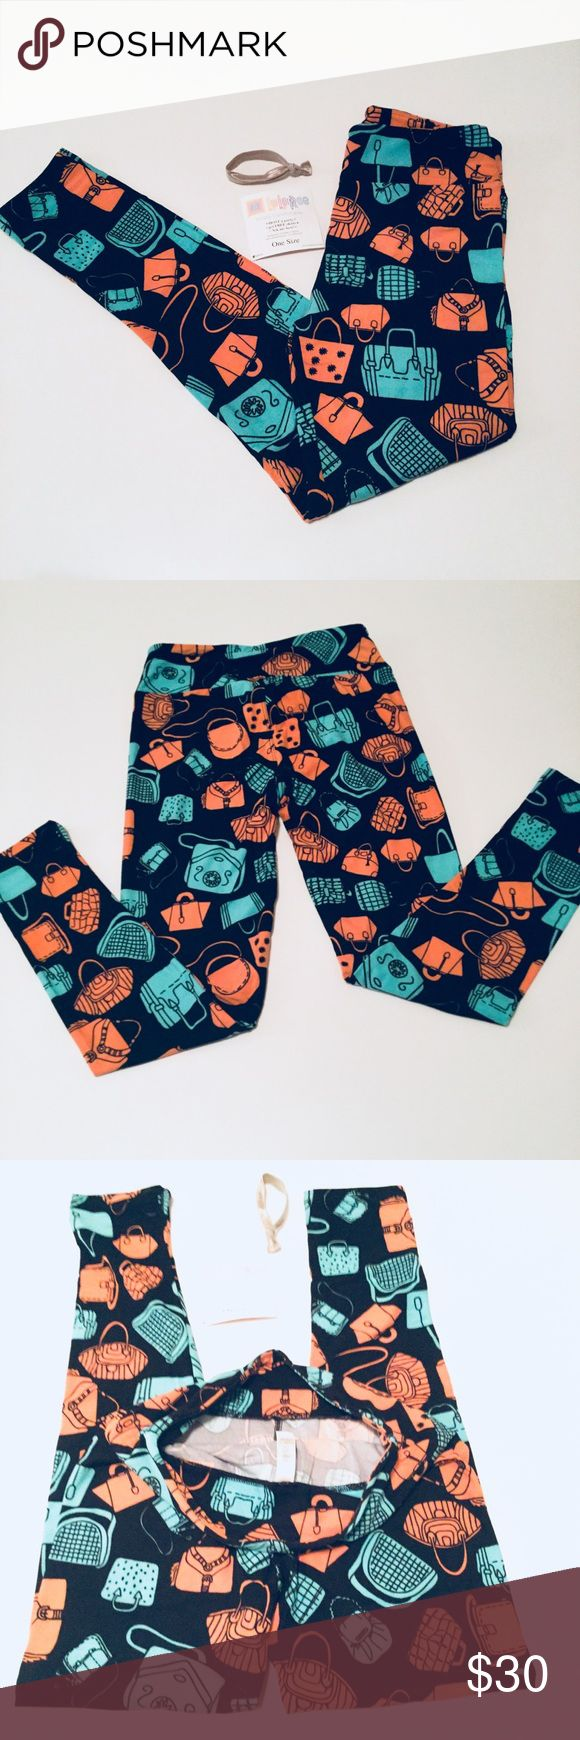 🆕 NWT LulaRoe O/S Leggings Purses 🆕 NWT LulaRoe O/S Leggings Purses Multi Color Print. Material: 92% Polyester, 8% Spandex. Soft buttery leggings and so comfortable! Made in Vietnam. Machine Wash Cold. See Size Chart in Photos (Best Fits Ladies Sizes 2-10). Colors are: Peach, Mint, and Black. 🚫 NO TRADES OR LOW BALL OFFERS🚫 LuLaRoe Pants Leggings